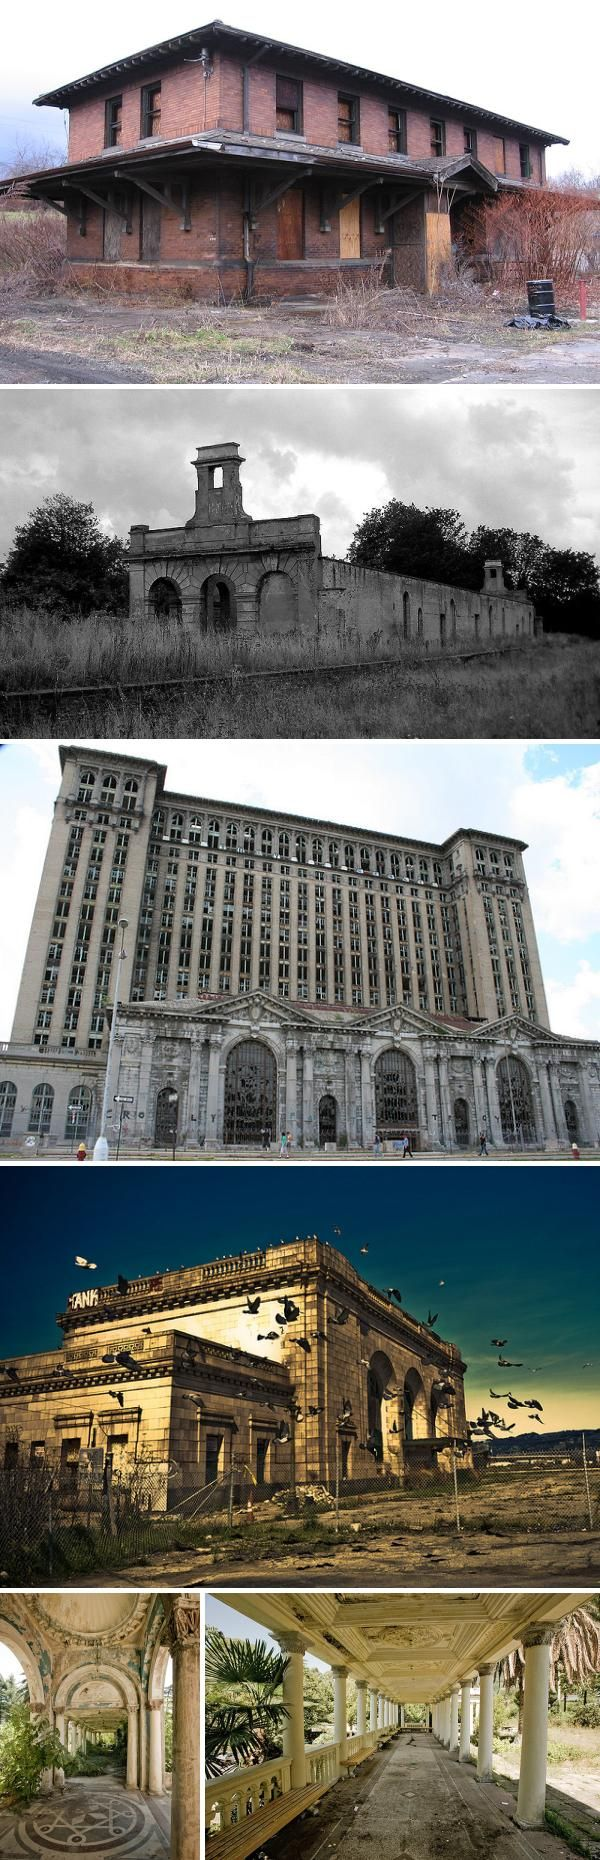 With tracks dismantled or abandoned and no trains to serve them, railway stations have also been left to the mercy of dereliction, demolition or developers.  Stations range in size and stature from small provincial holts to magnificent terminals like Michigan Central Station in Detroit, and while some are repurposed, most are either bulldozed or left to the vandals.